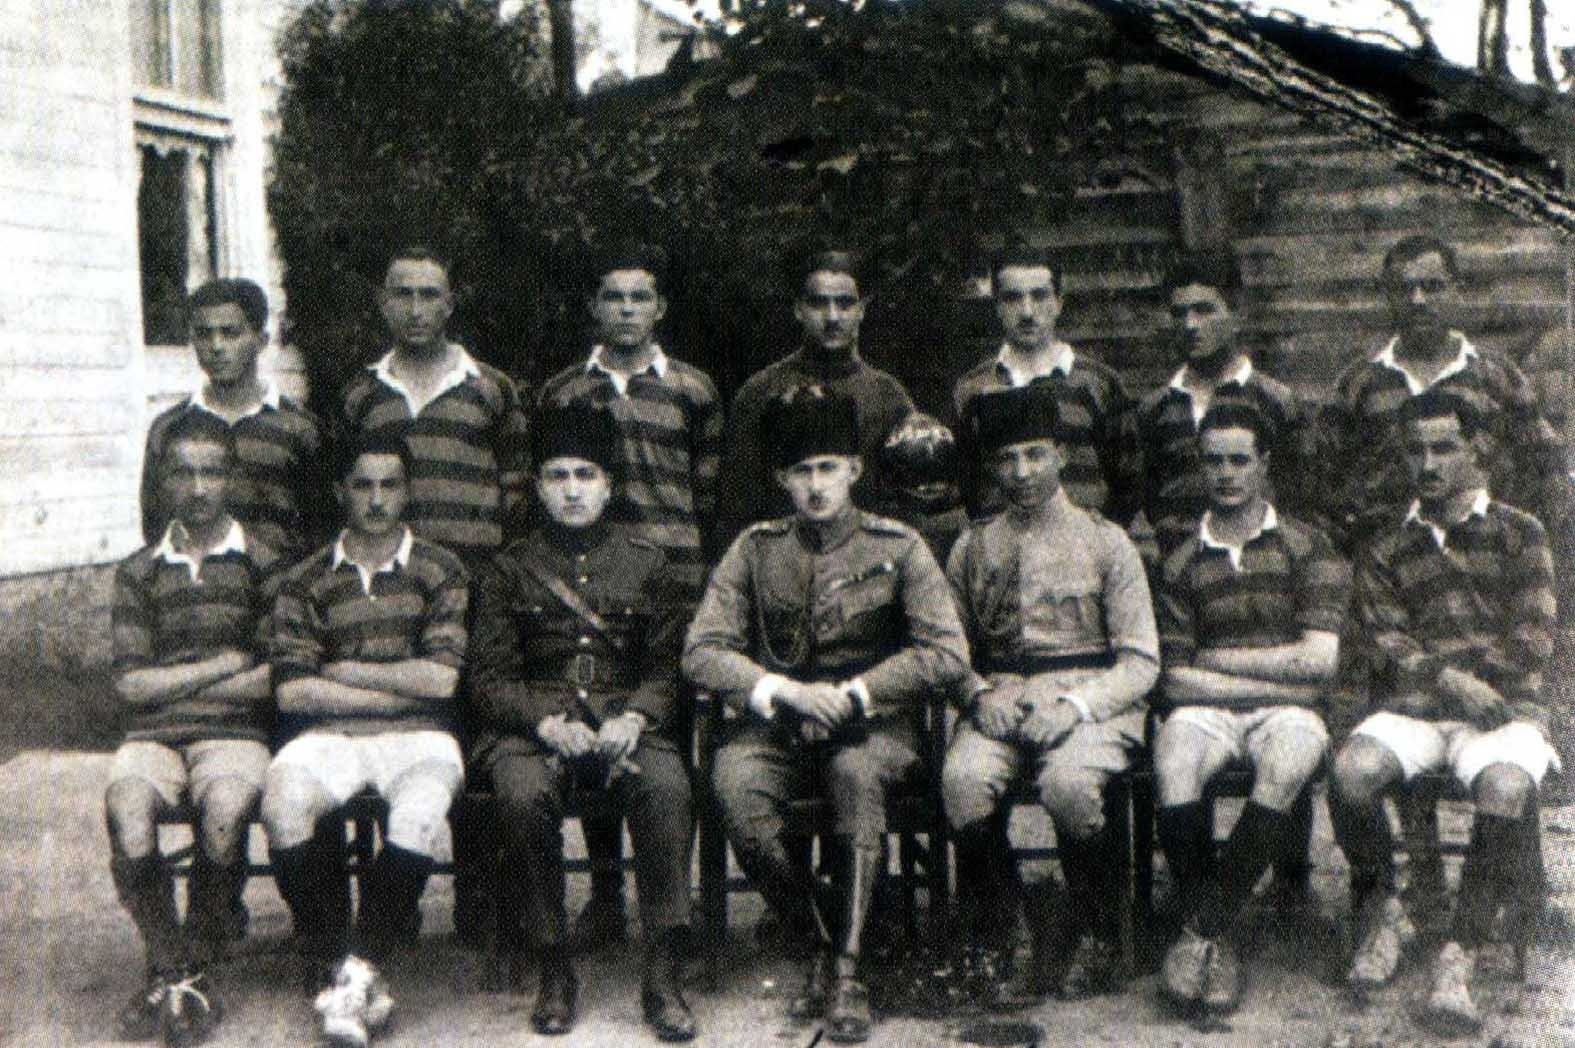 Shahzade u00d6mer Faruk, the son of the last Ottoman caliphate Abdu00fclmecid, (center) was the president of the Fenerbahu00e7e Sports Club from 1919 to 1924